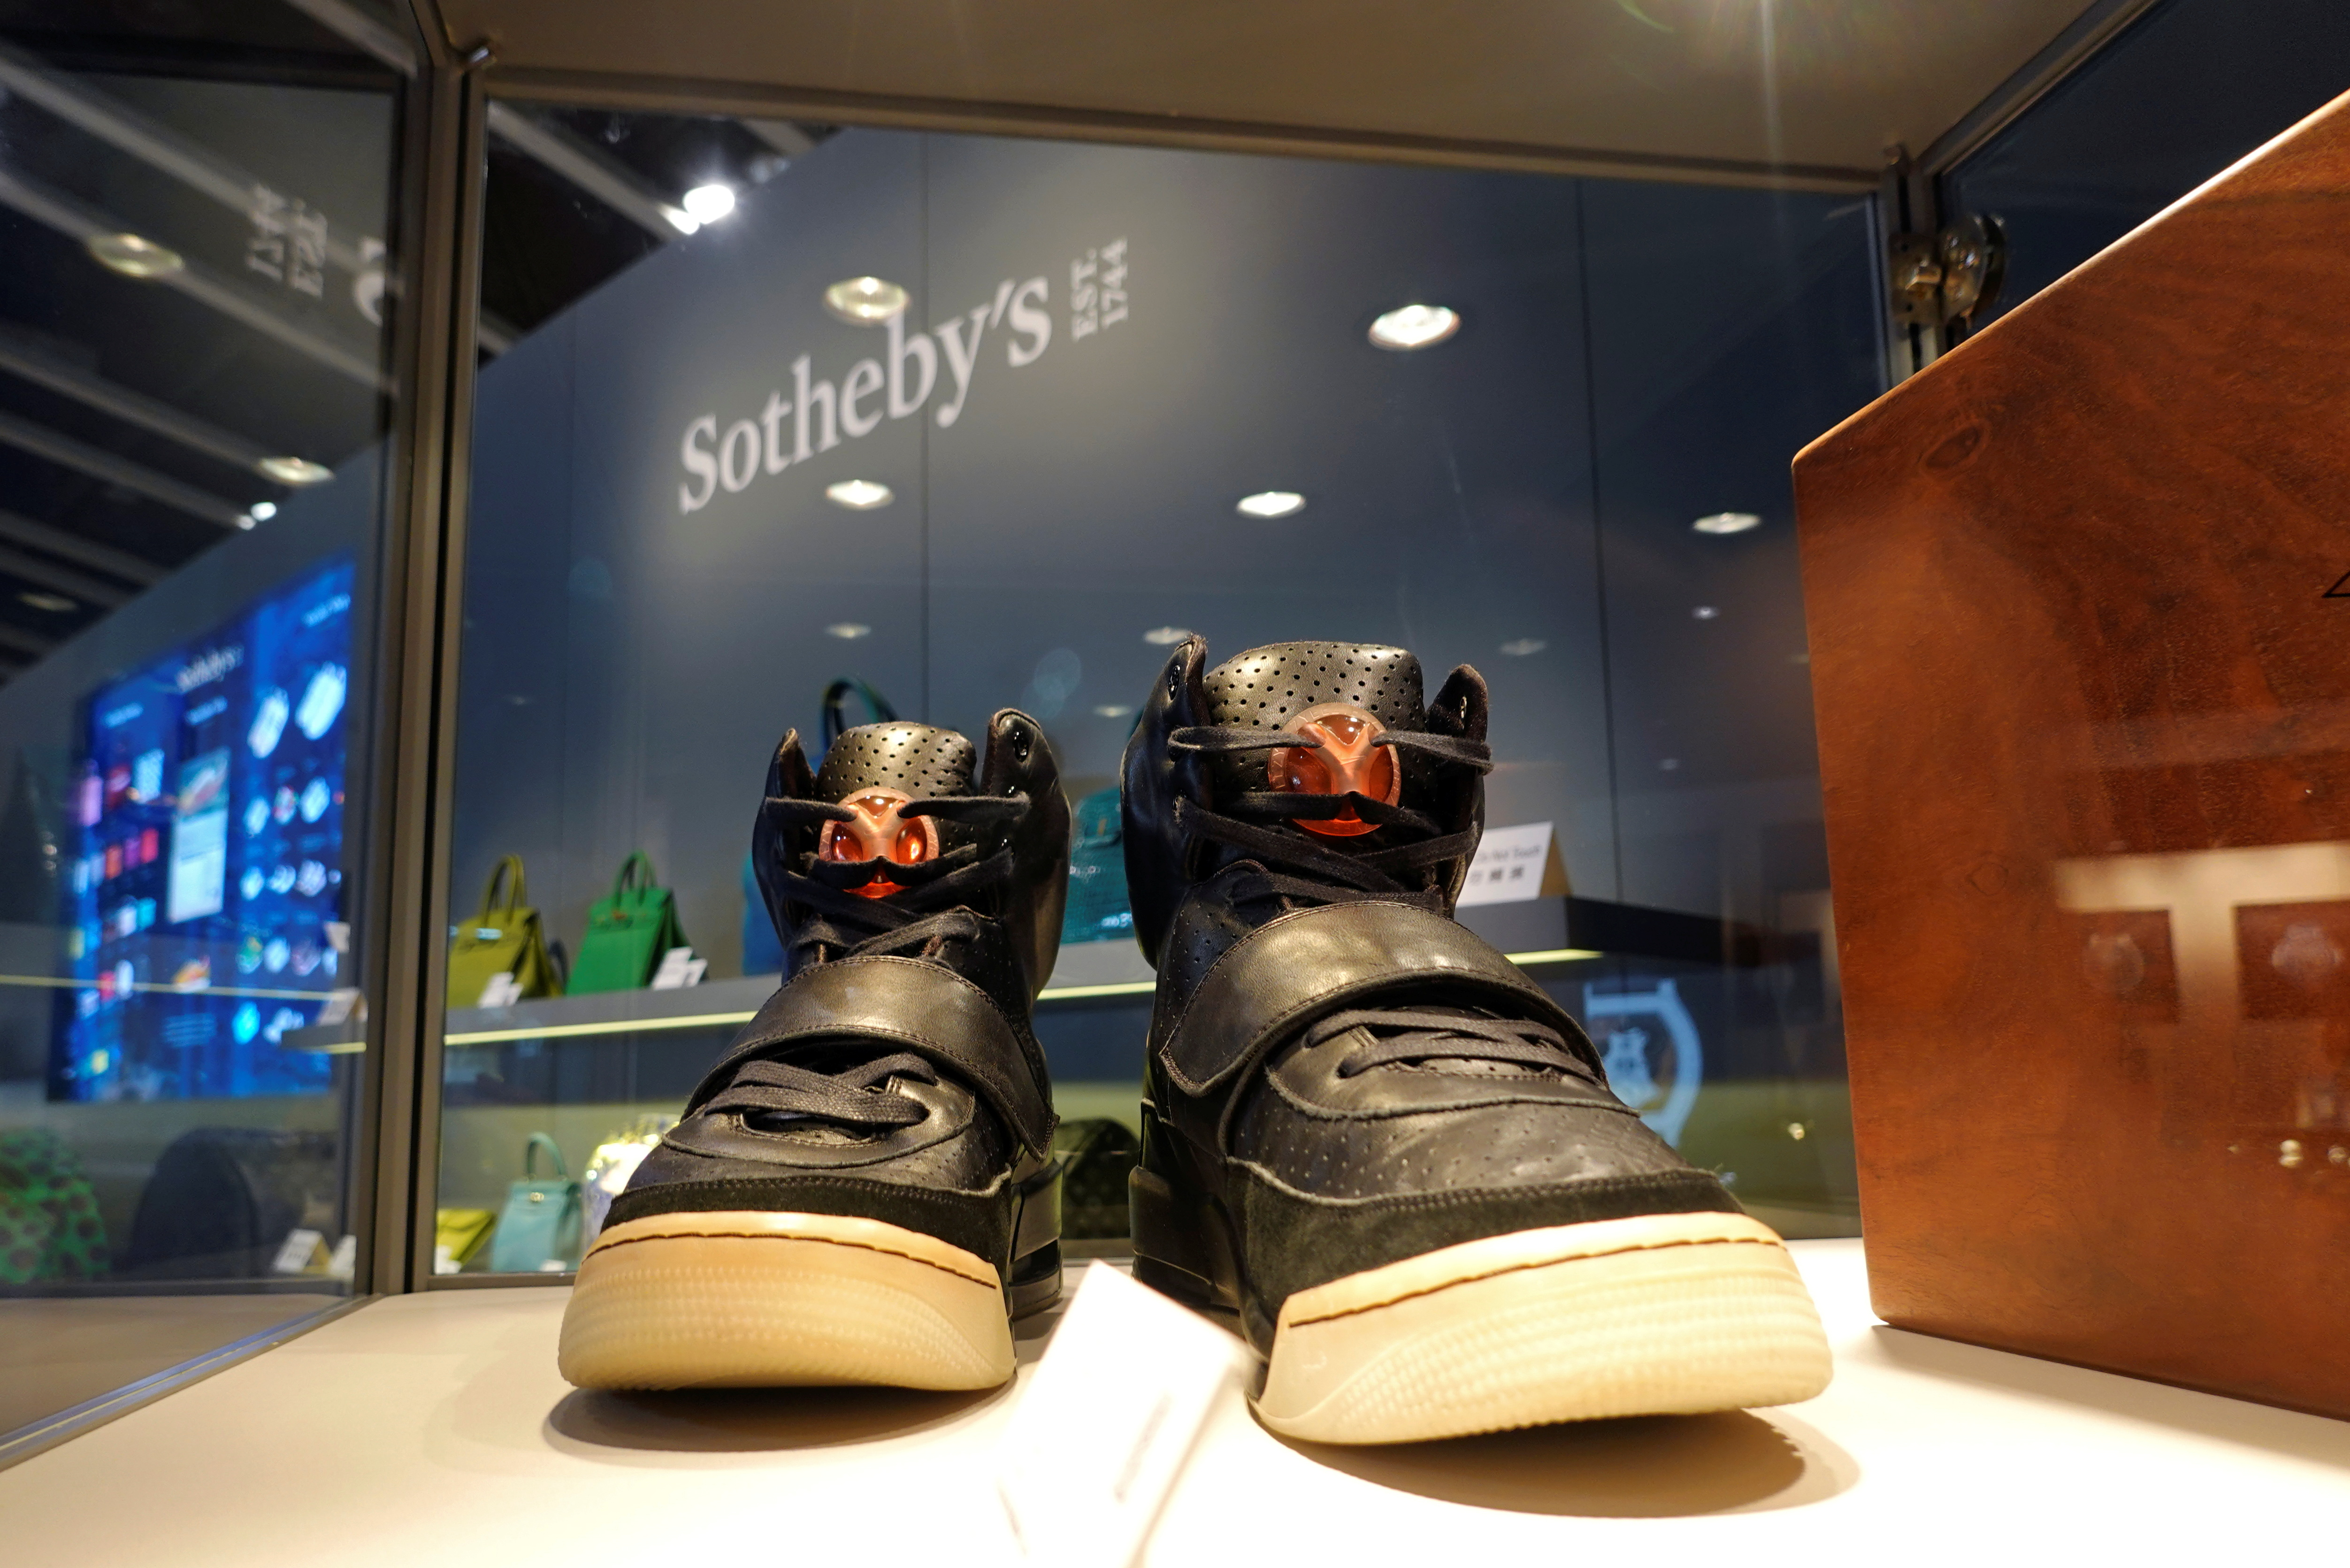 A pair of 'Nike Air Yeezy 1' prototype sneakers designed by Kanye West, are displayed at the Hong Kong Convention and Exhibition Centre before going up for private sale at Sotheby's, in Hong Kong, China April 16, 2021. REUTERS/Joyce Zhou